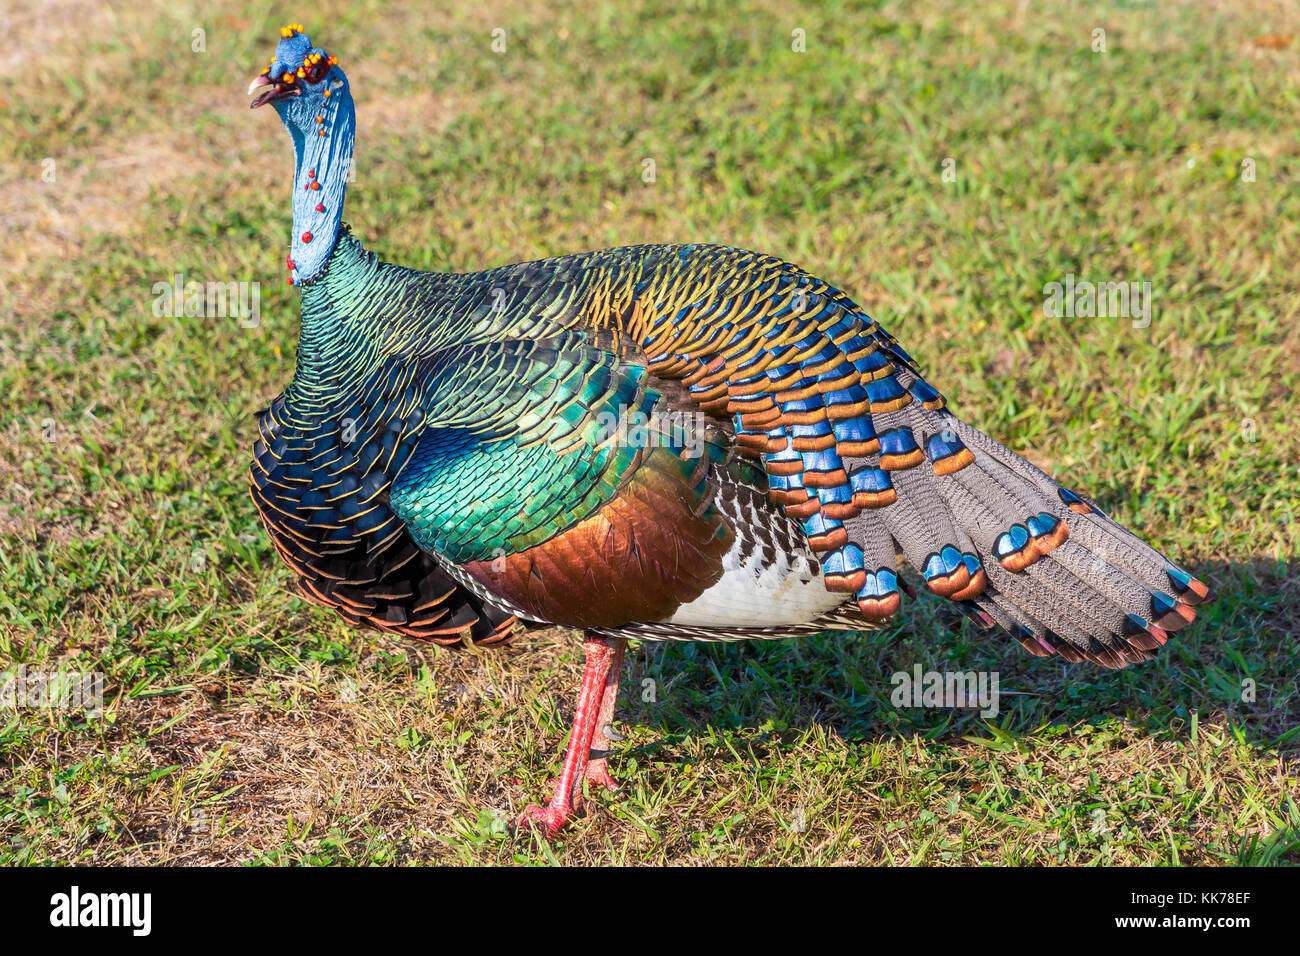 Ocellated Turkey | Tikal | Guatemala - Stock Image